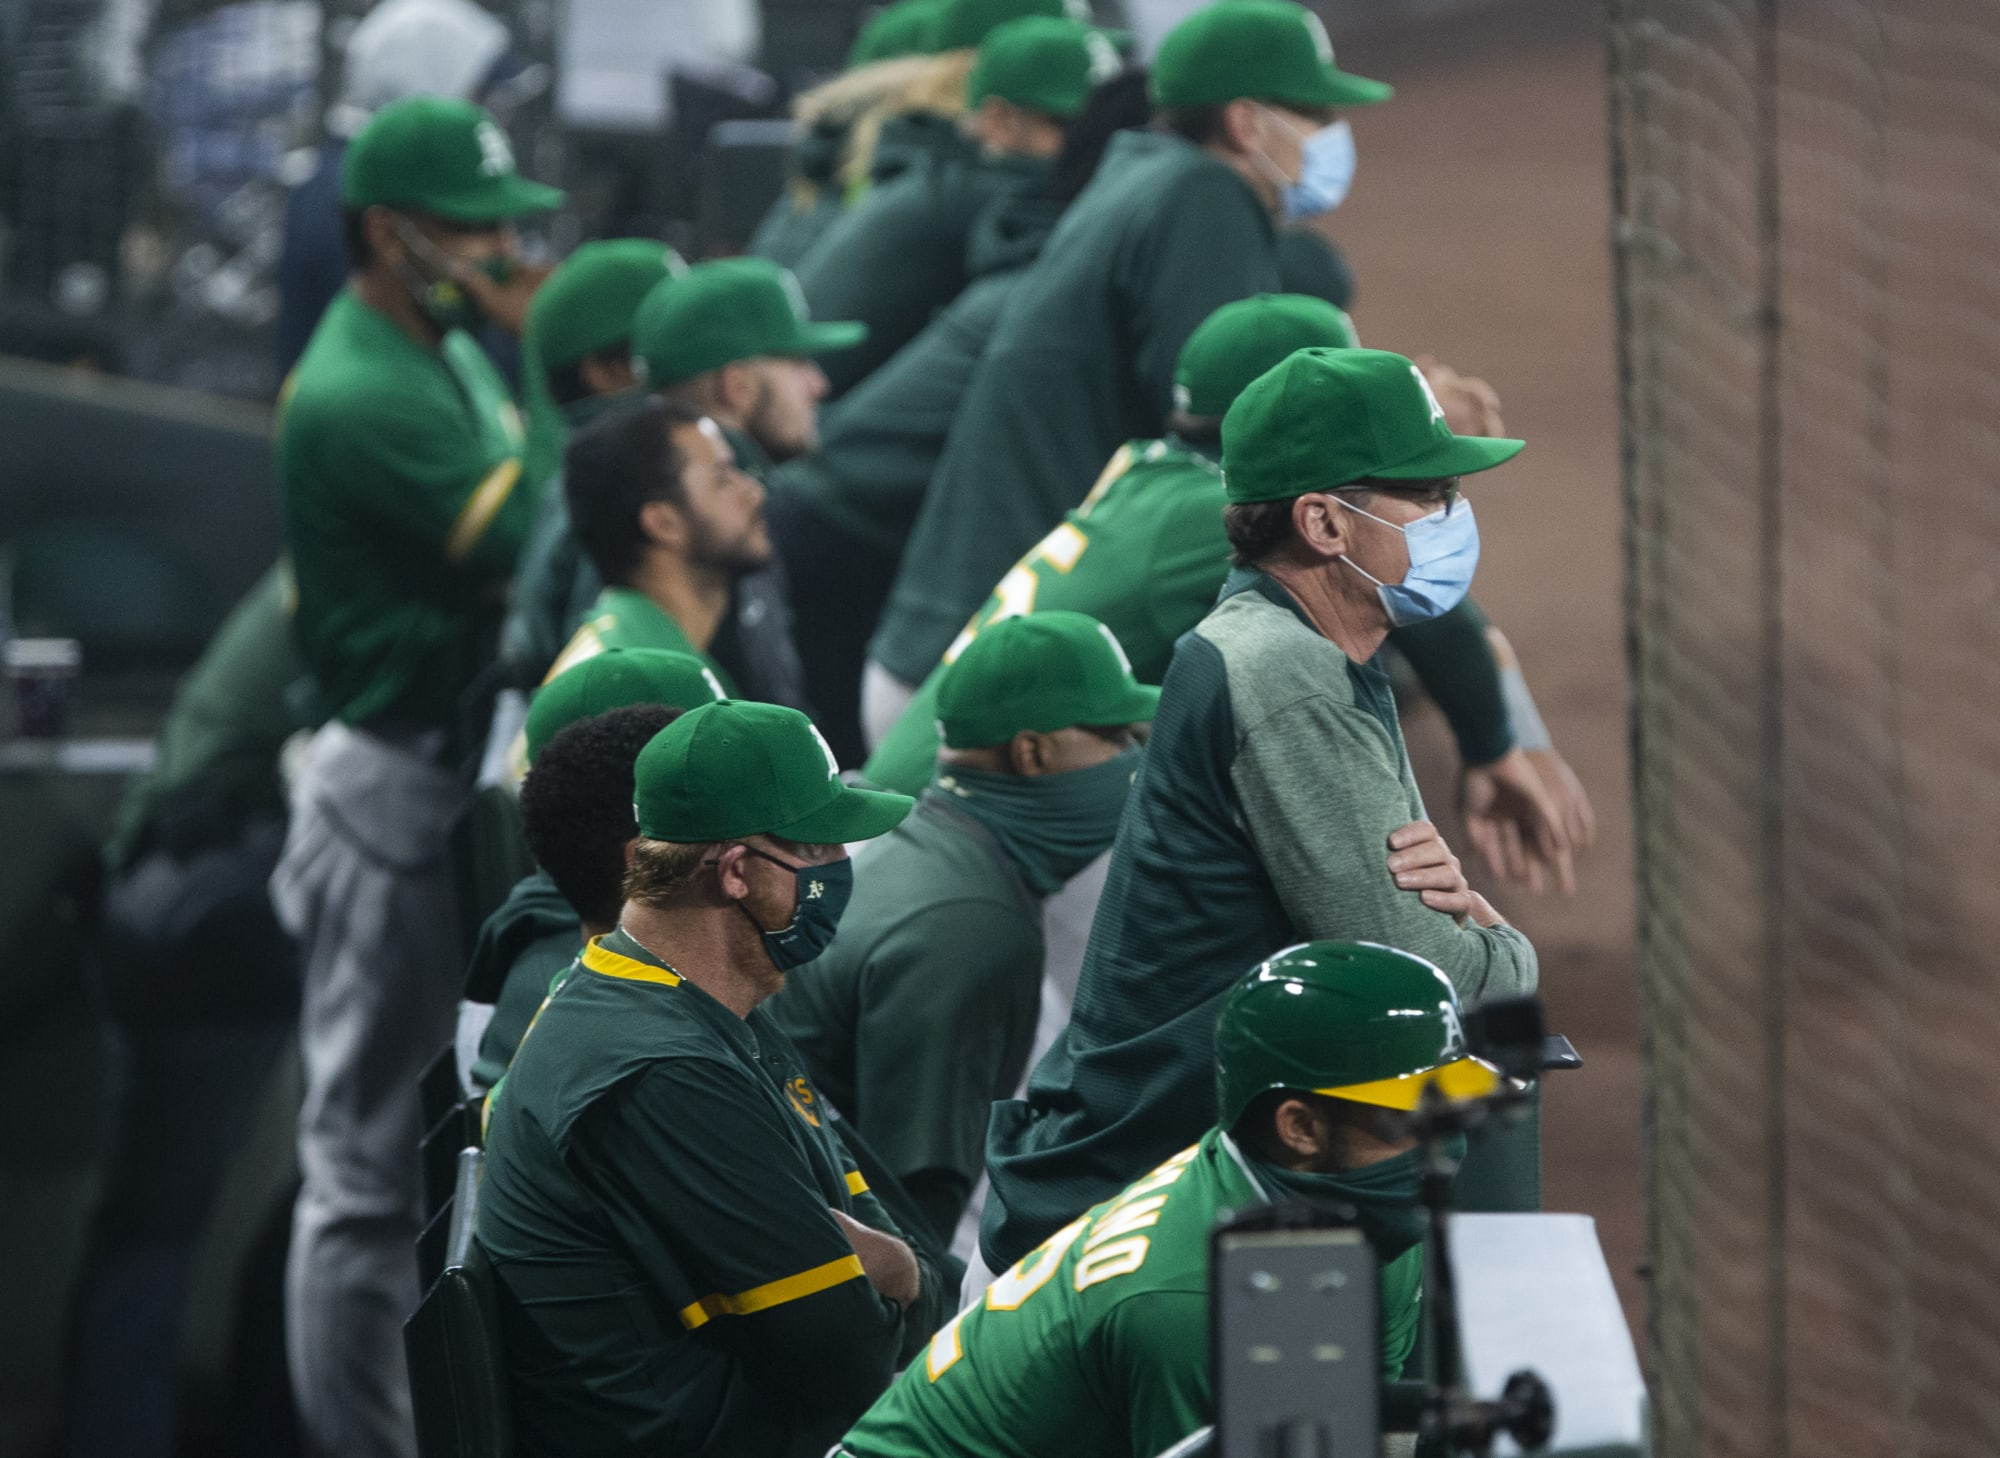 Oakland A's have worse chance of reaching World Series than Astros